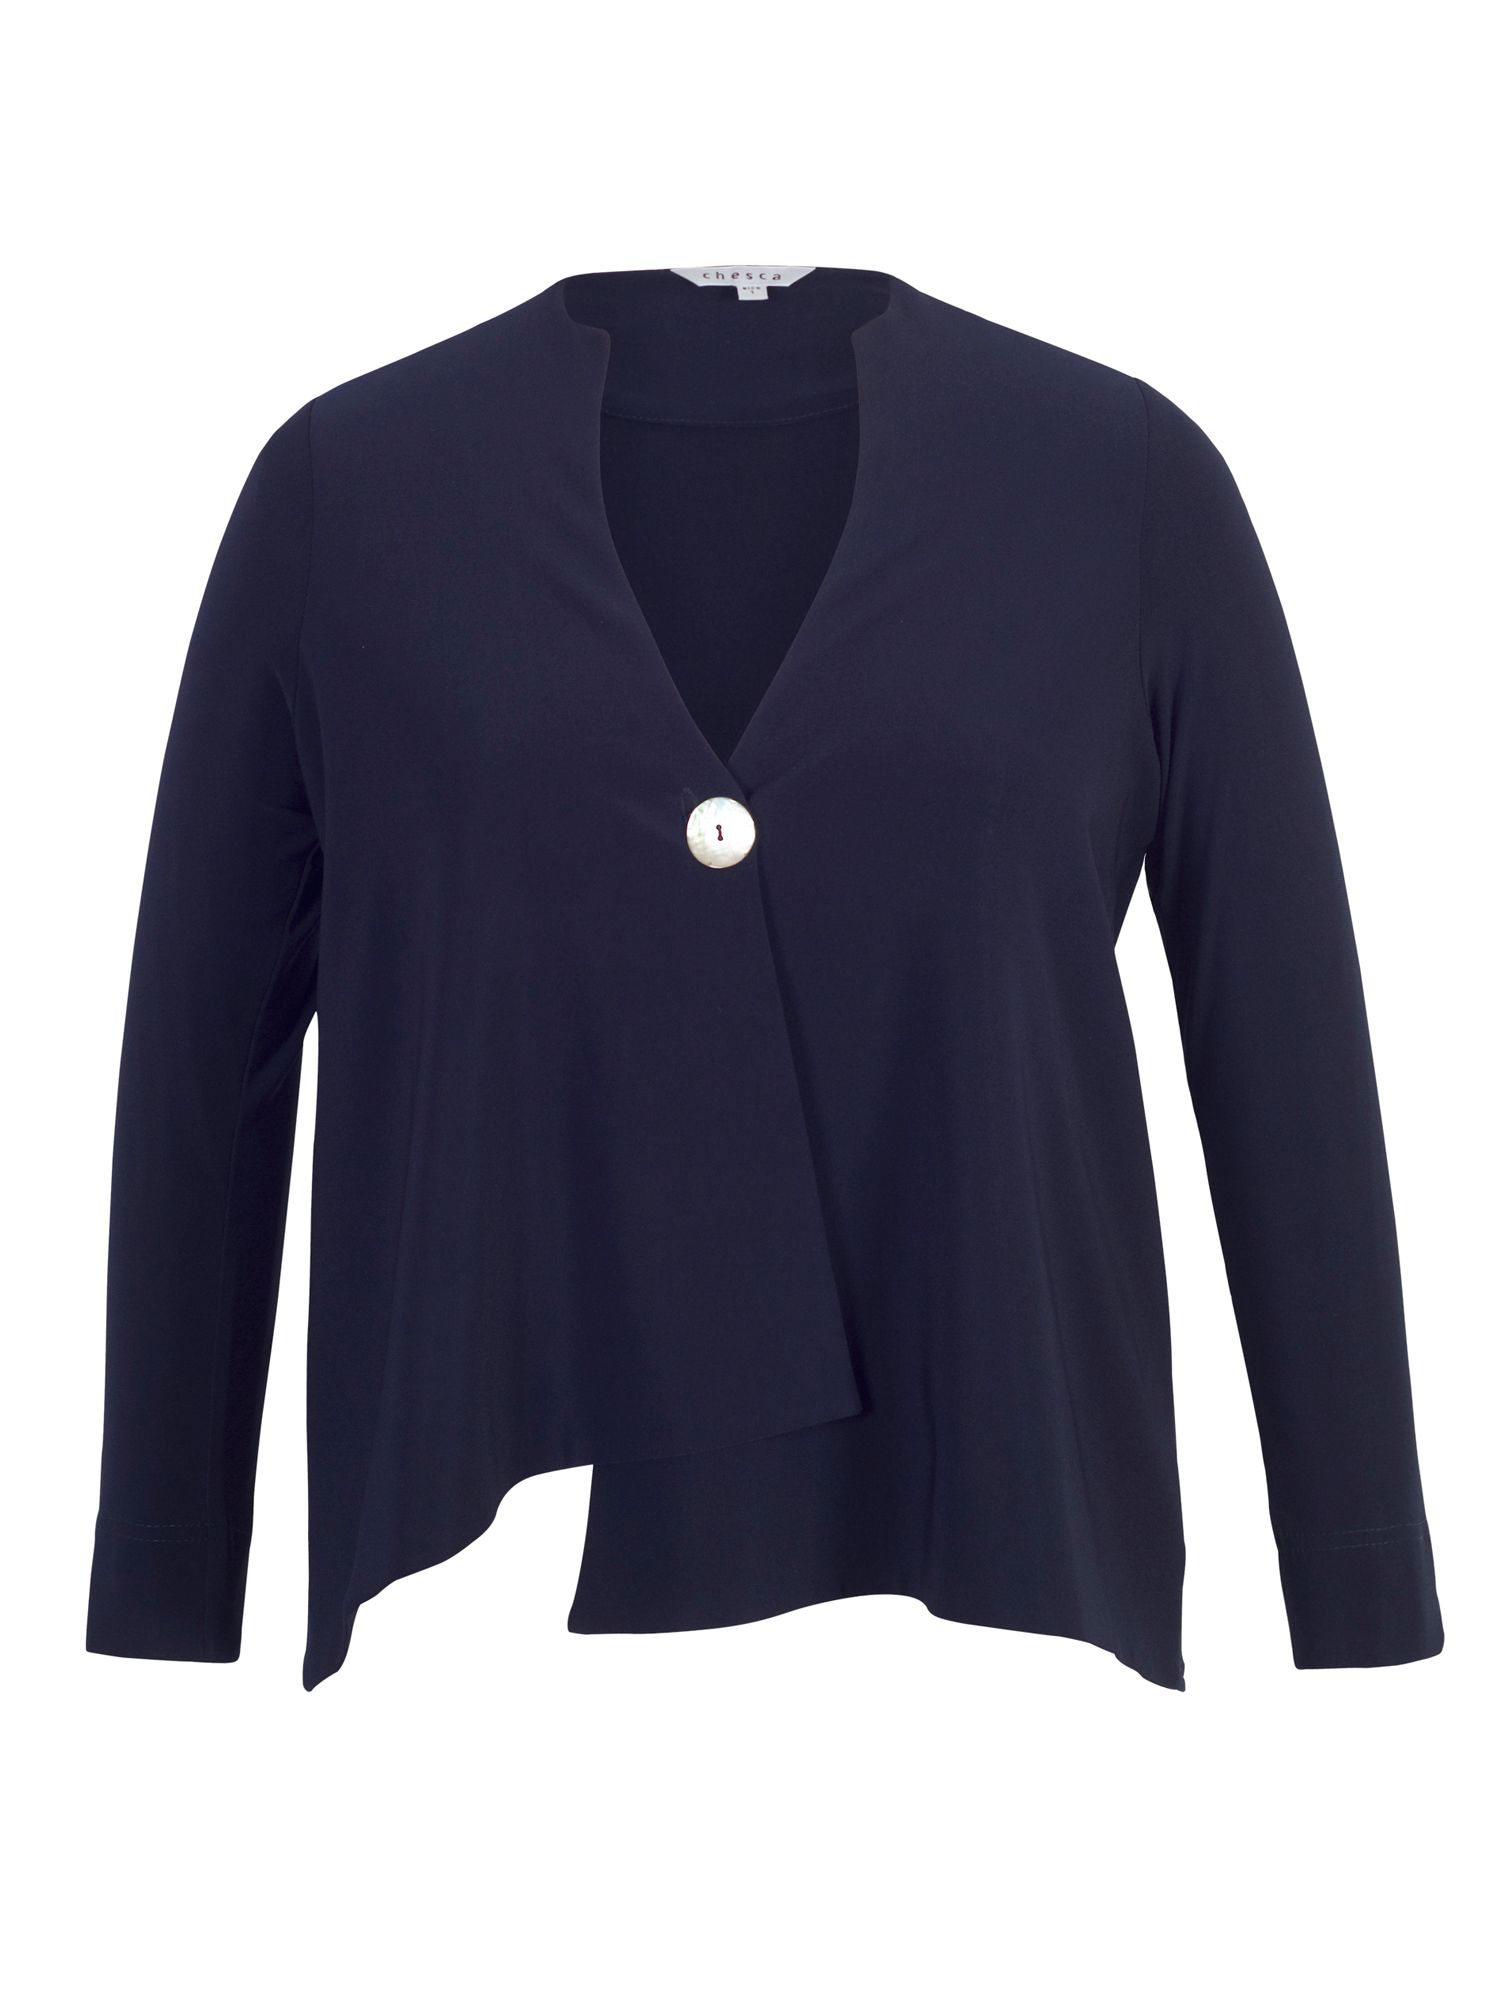 Chesca Asymmetric Jersey Jacket, Blue